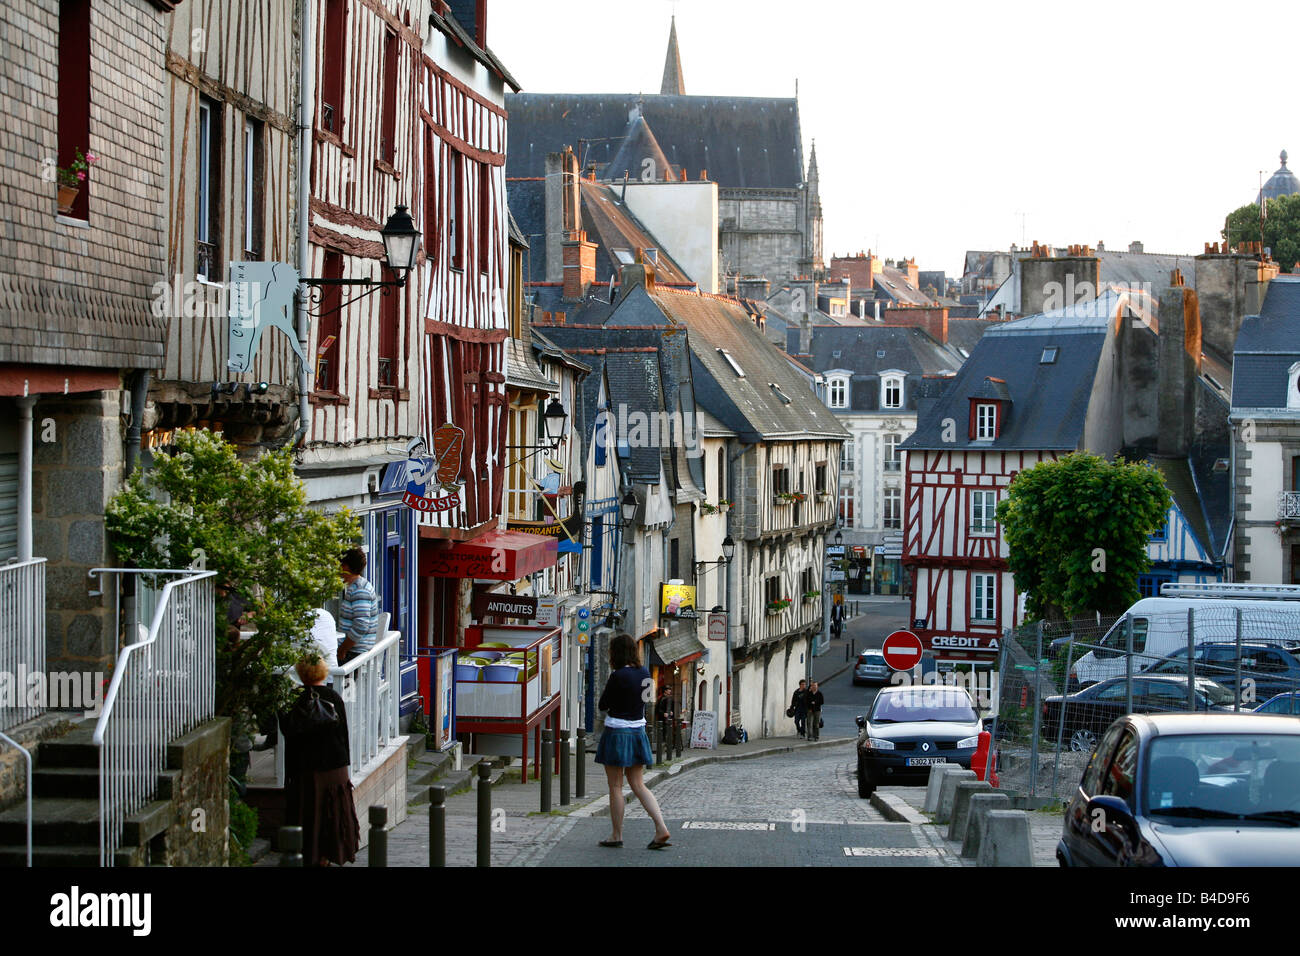 July 2008 - Half timbered houses in the old town of Vannes Brittany France - Stock Image